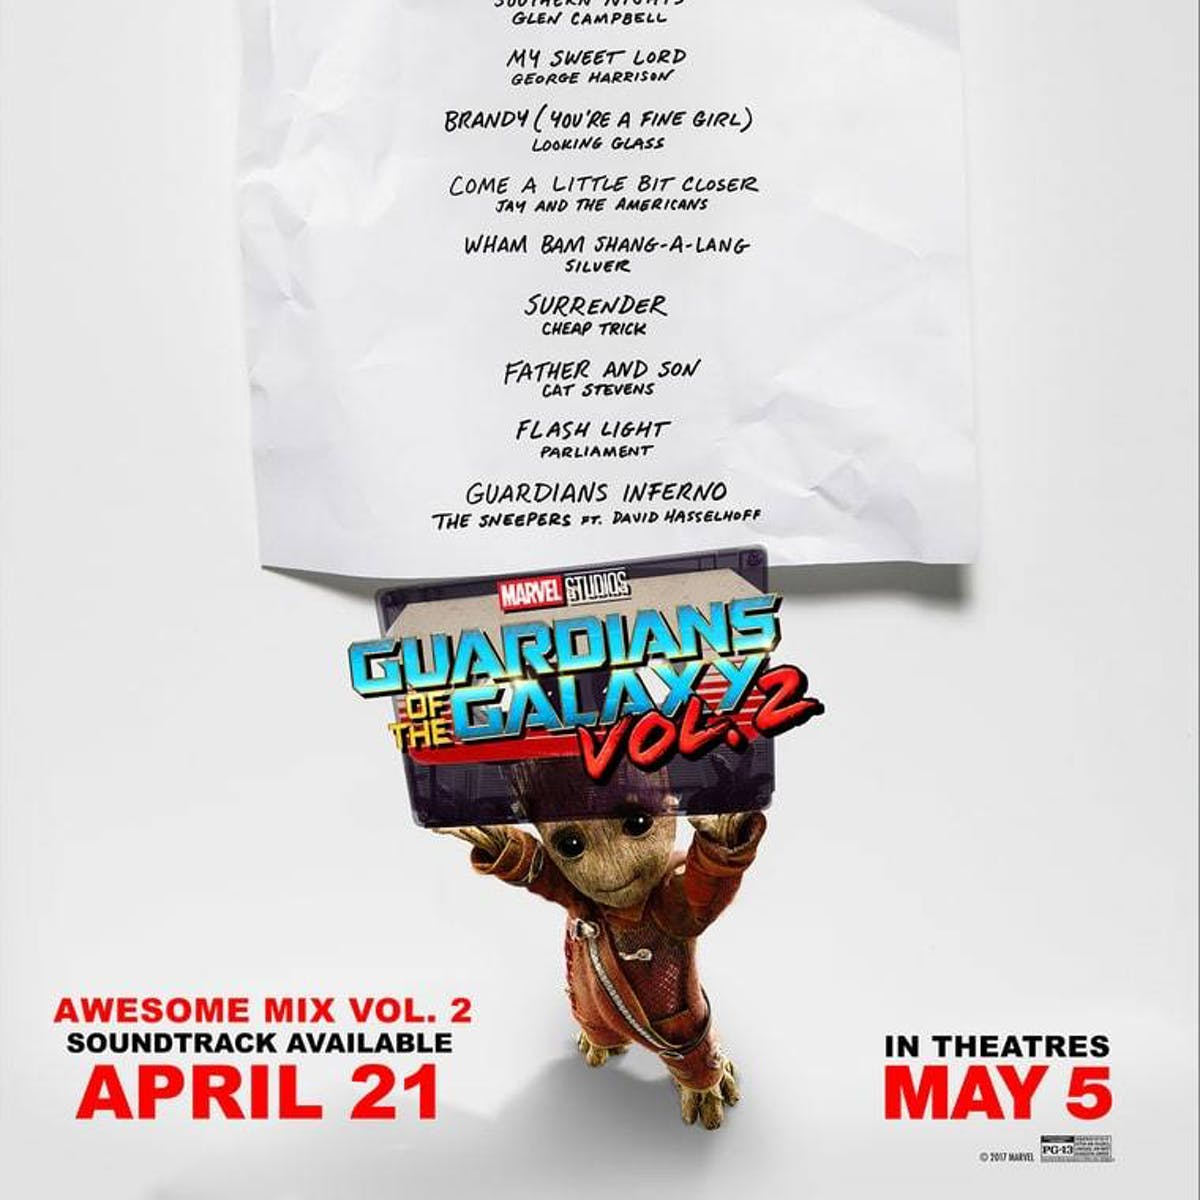 awesome mix vol 1 free mp3 download